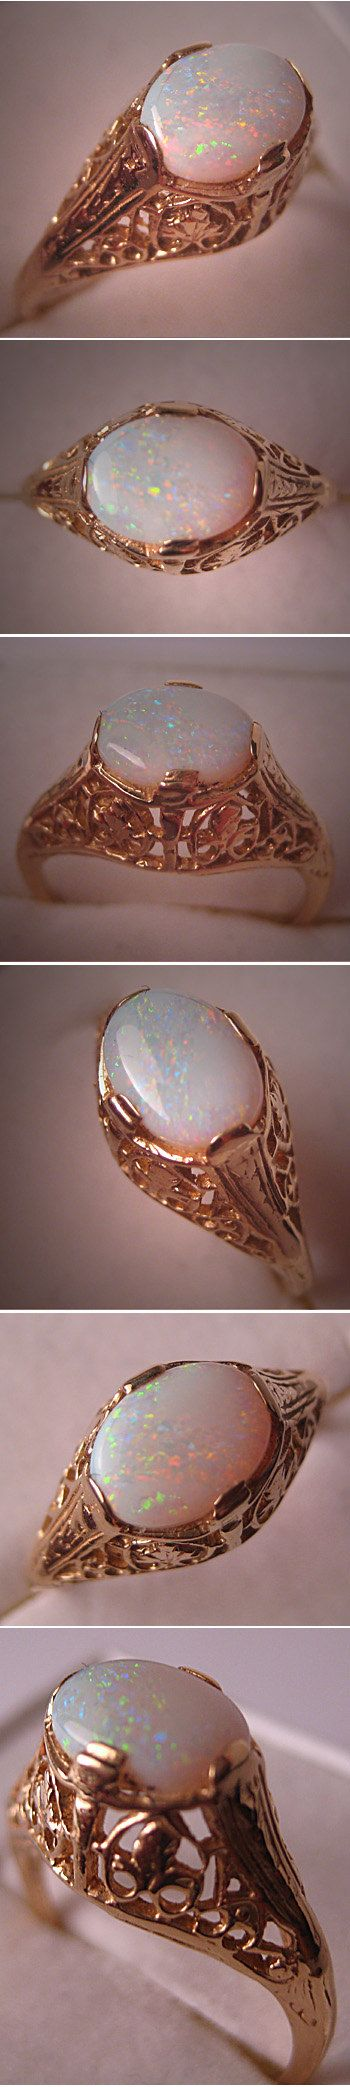 Vintage Australian Opal Ring Gold Filigree by AawsombleiJewelry, $695.00 | I think opals are really cool. #opalsaustralia